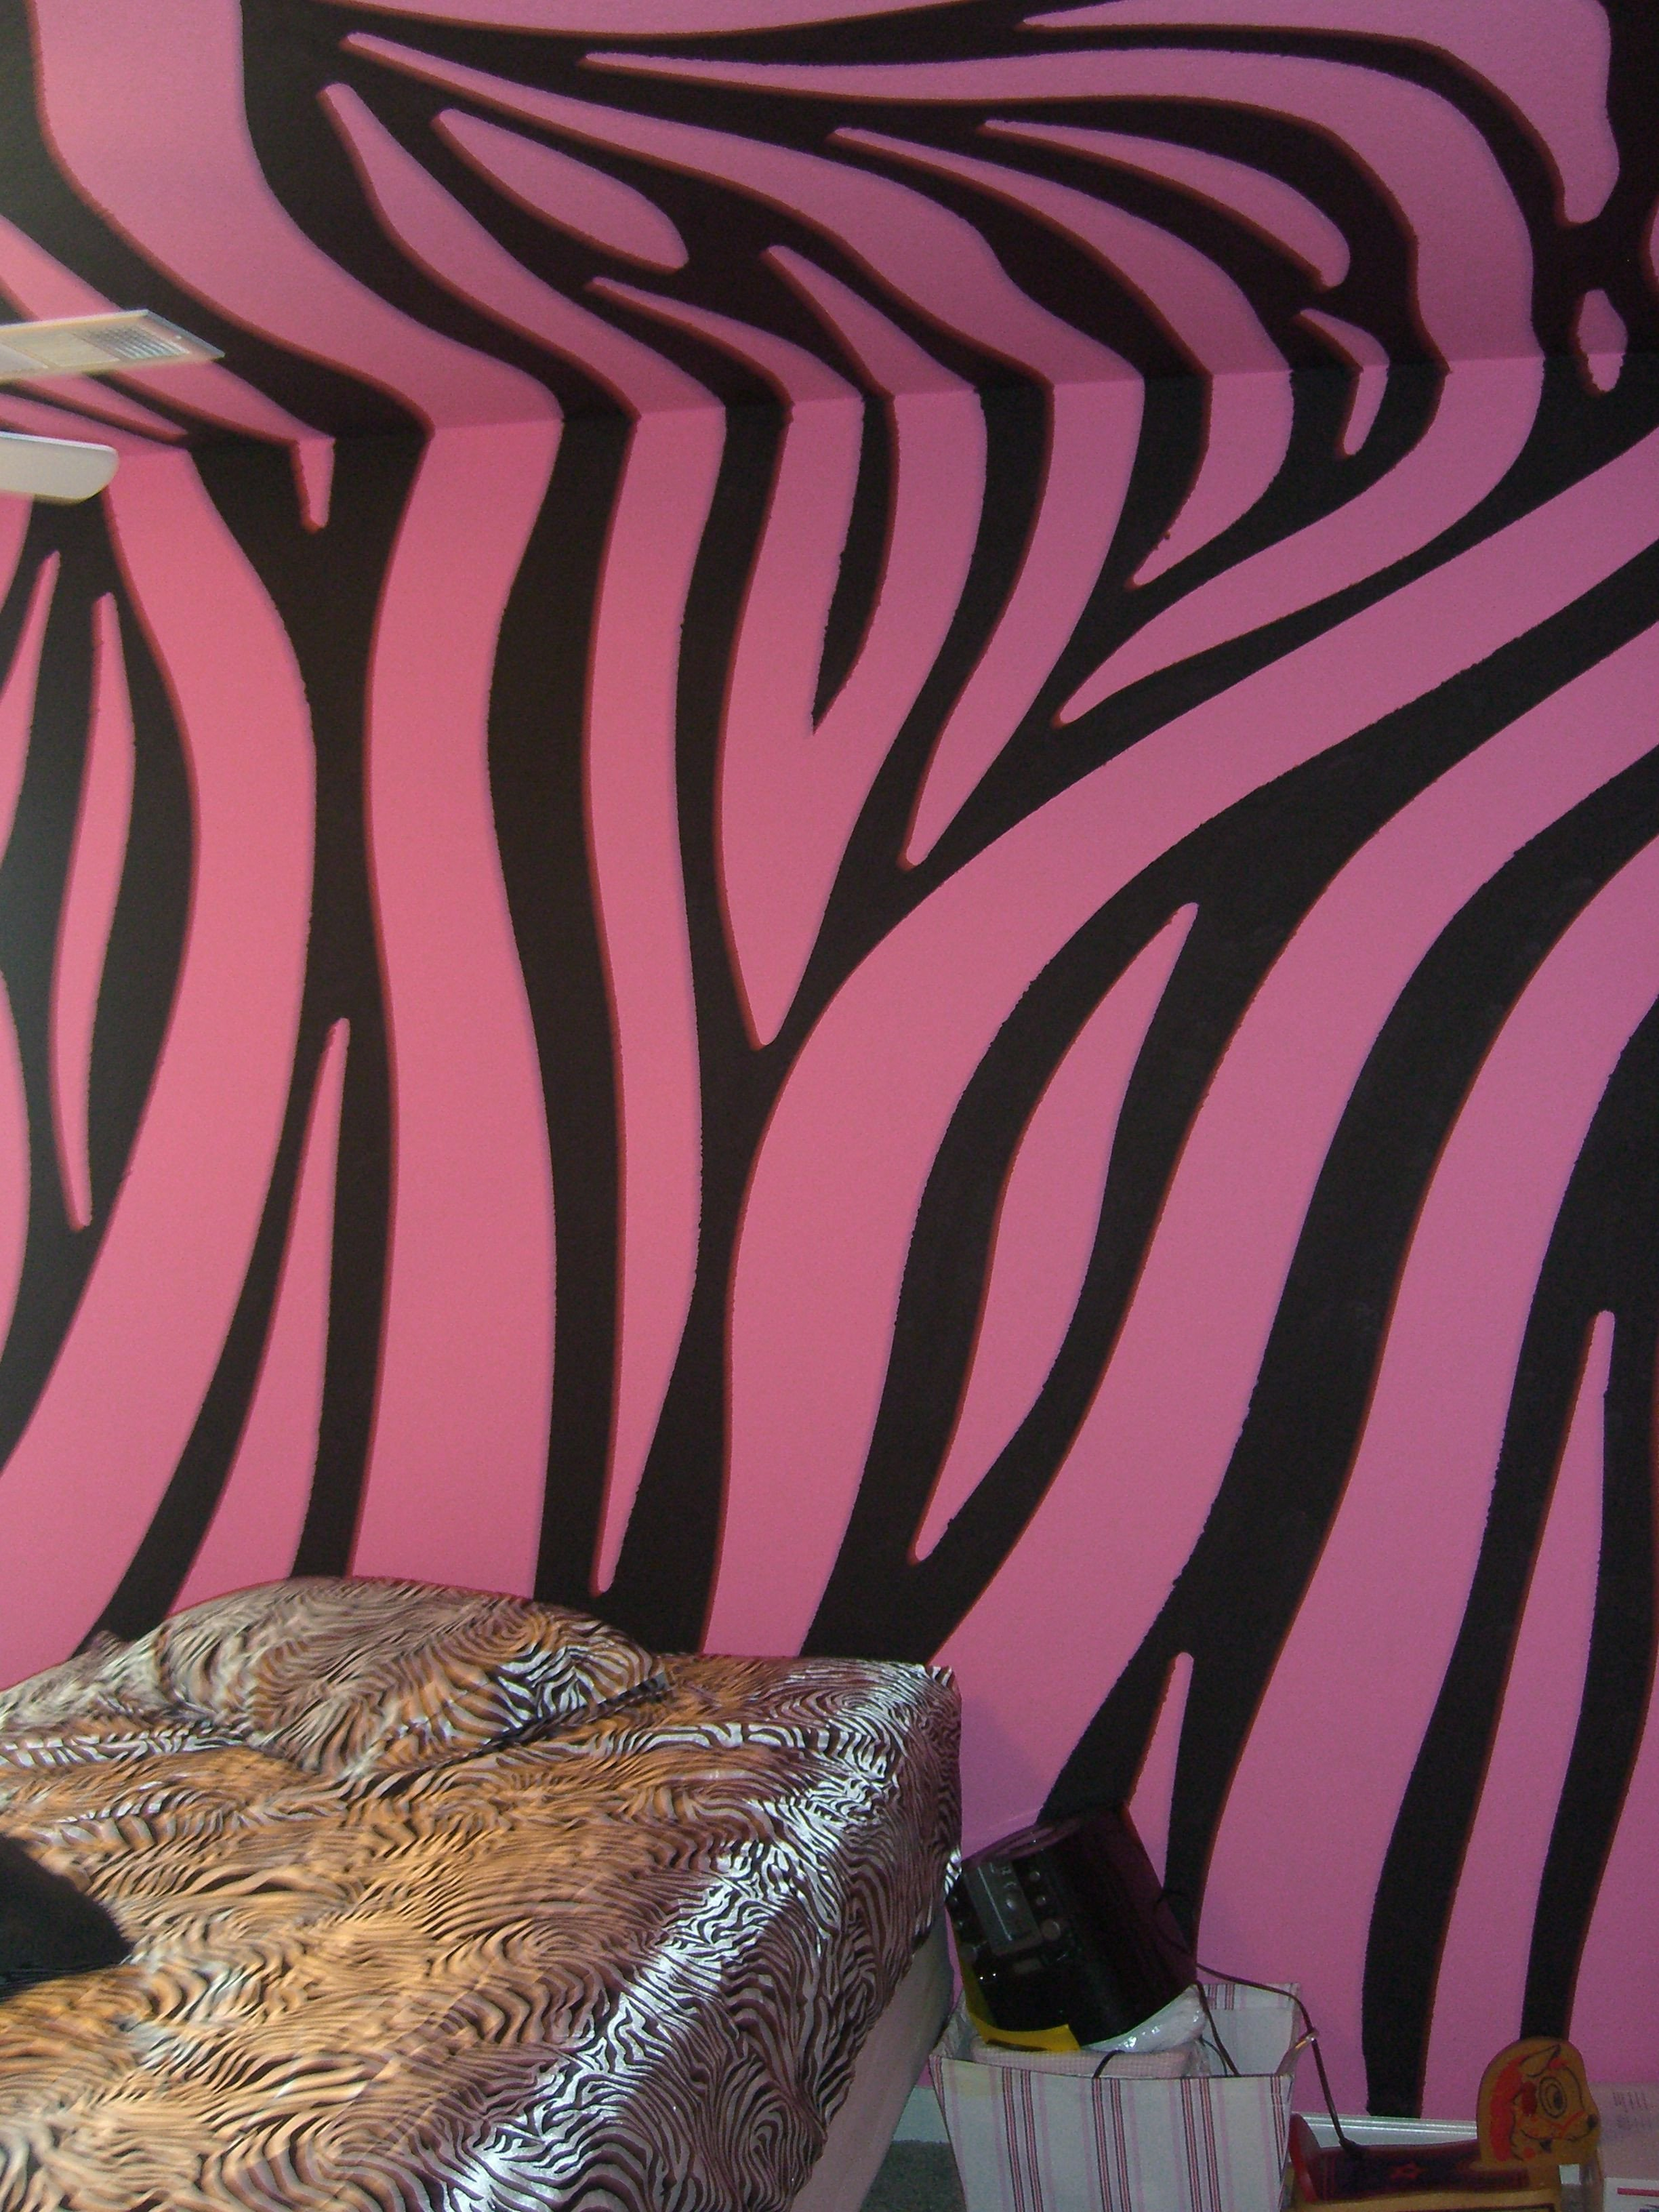 Pink and Black Bedroom Elegant Super Cool Pink and Black Zebra Walls Painted by Chris W